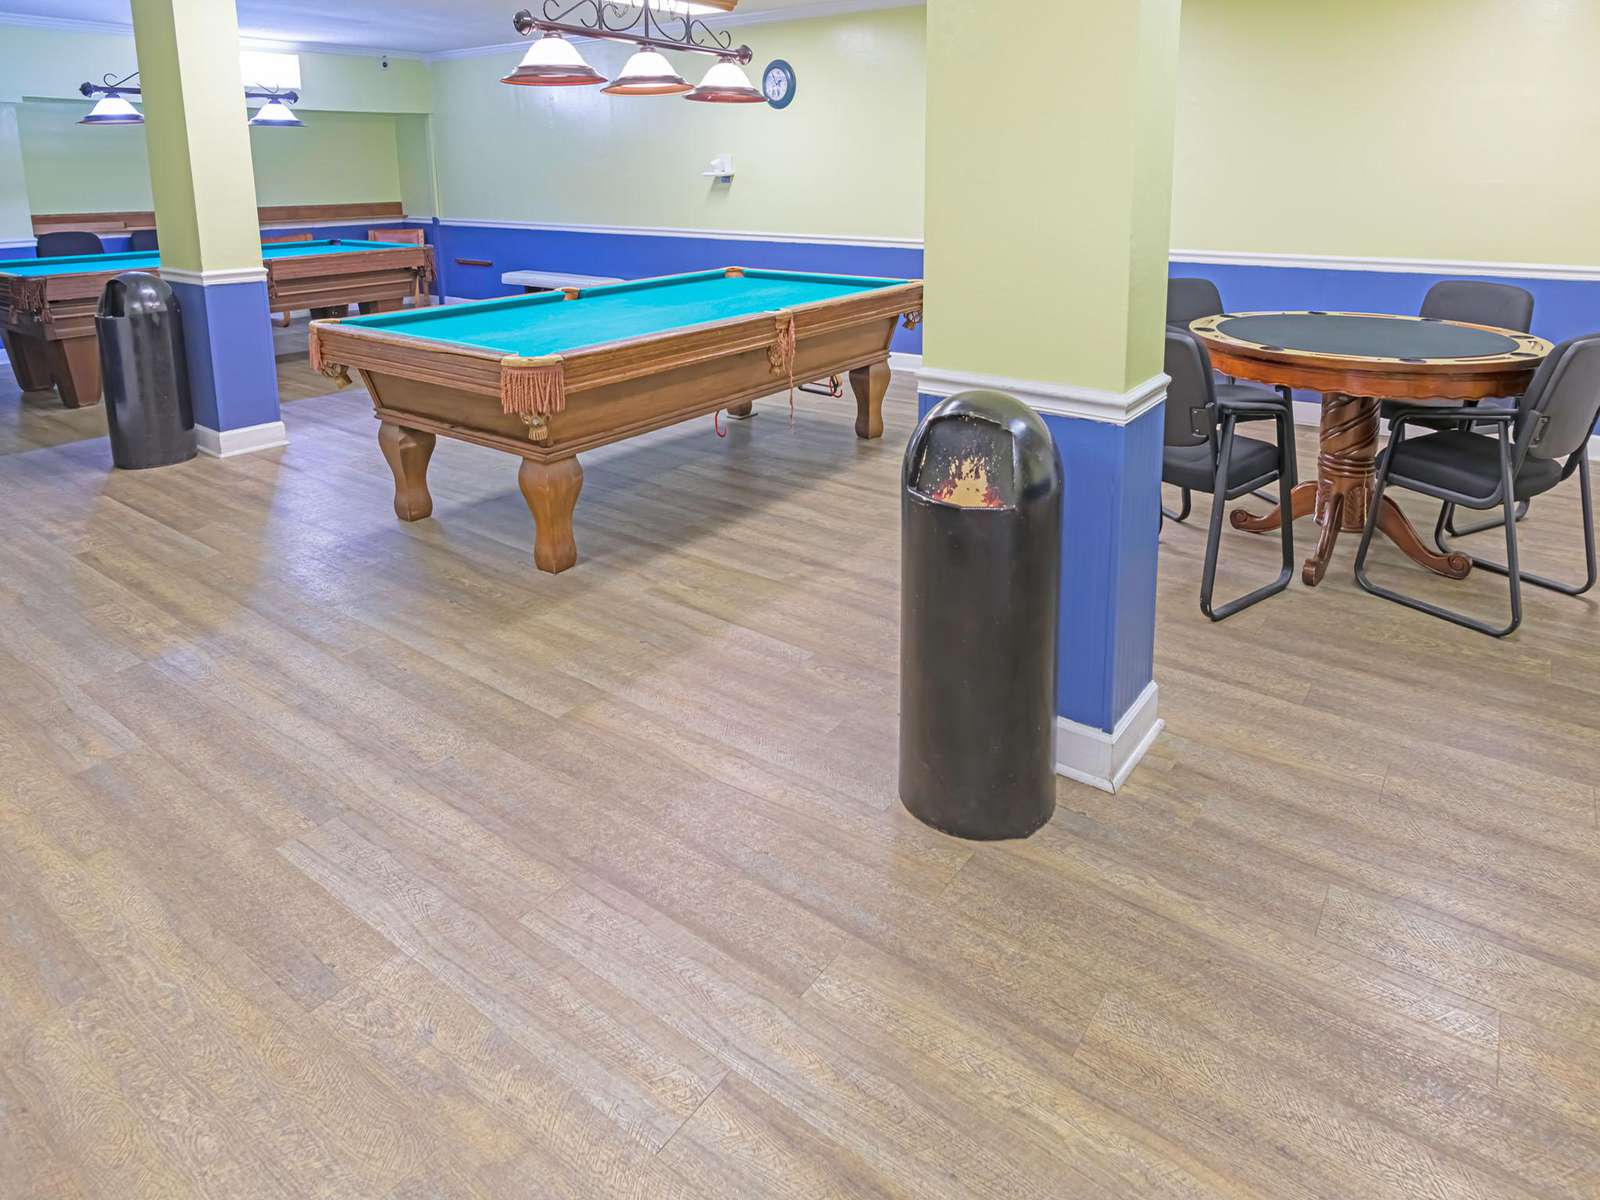 Billiards room available for guests!